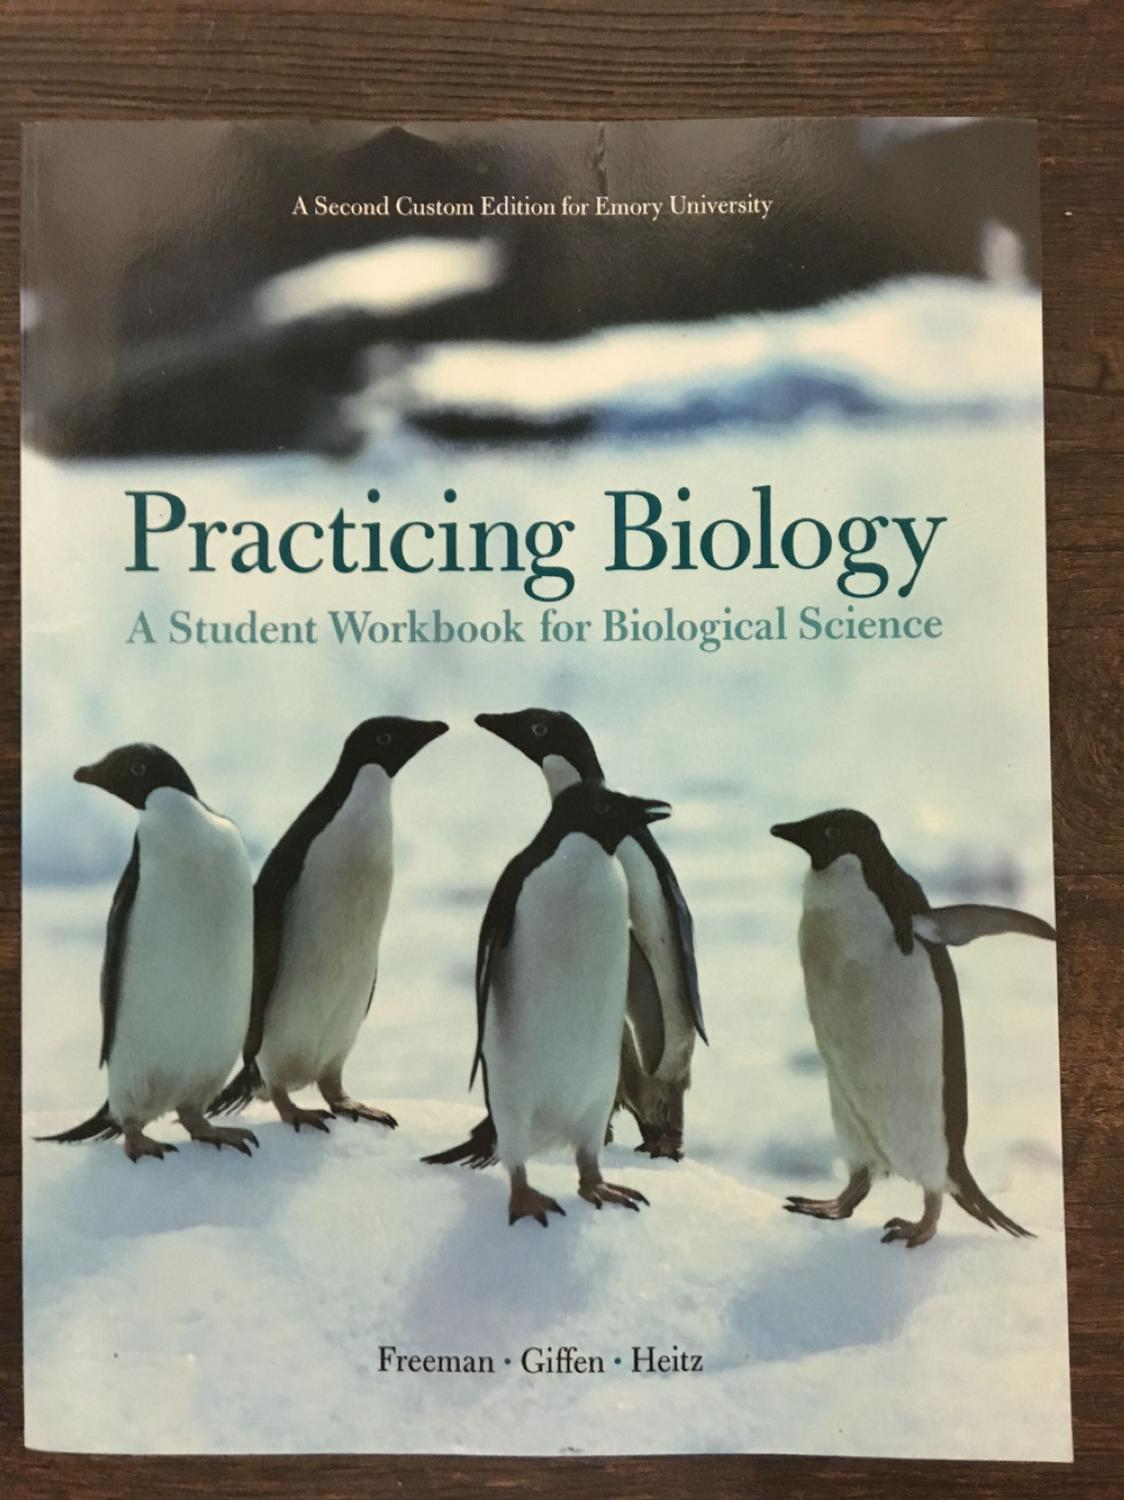 Best practicing biology workbook pearson emory university second edition for sale in atlanta georgia for 2017